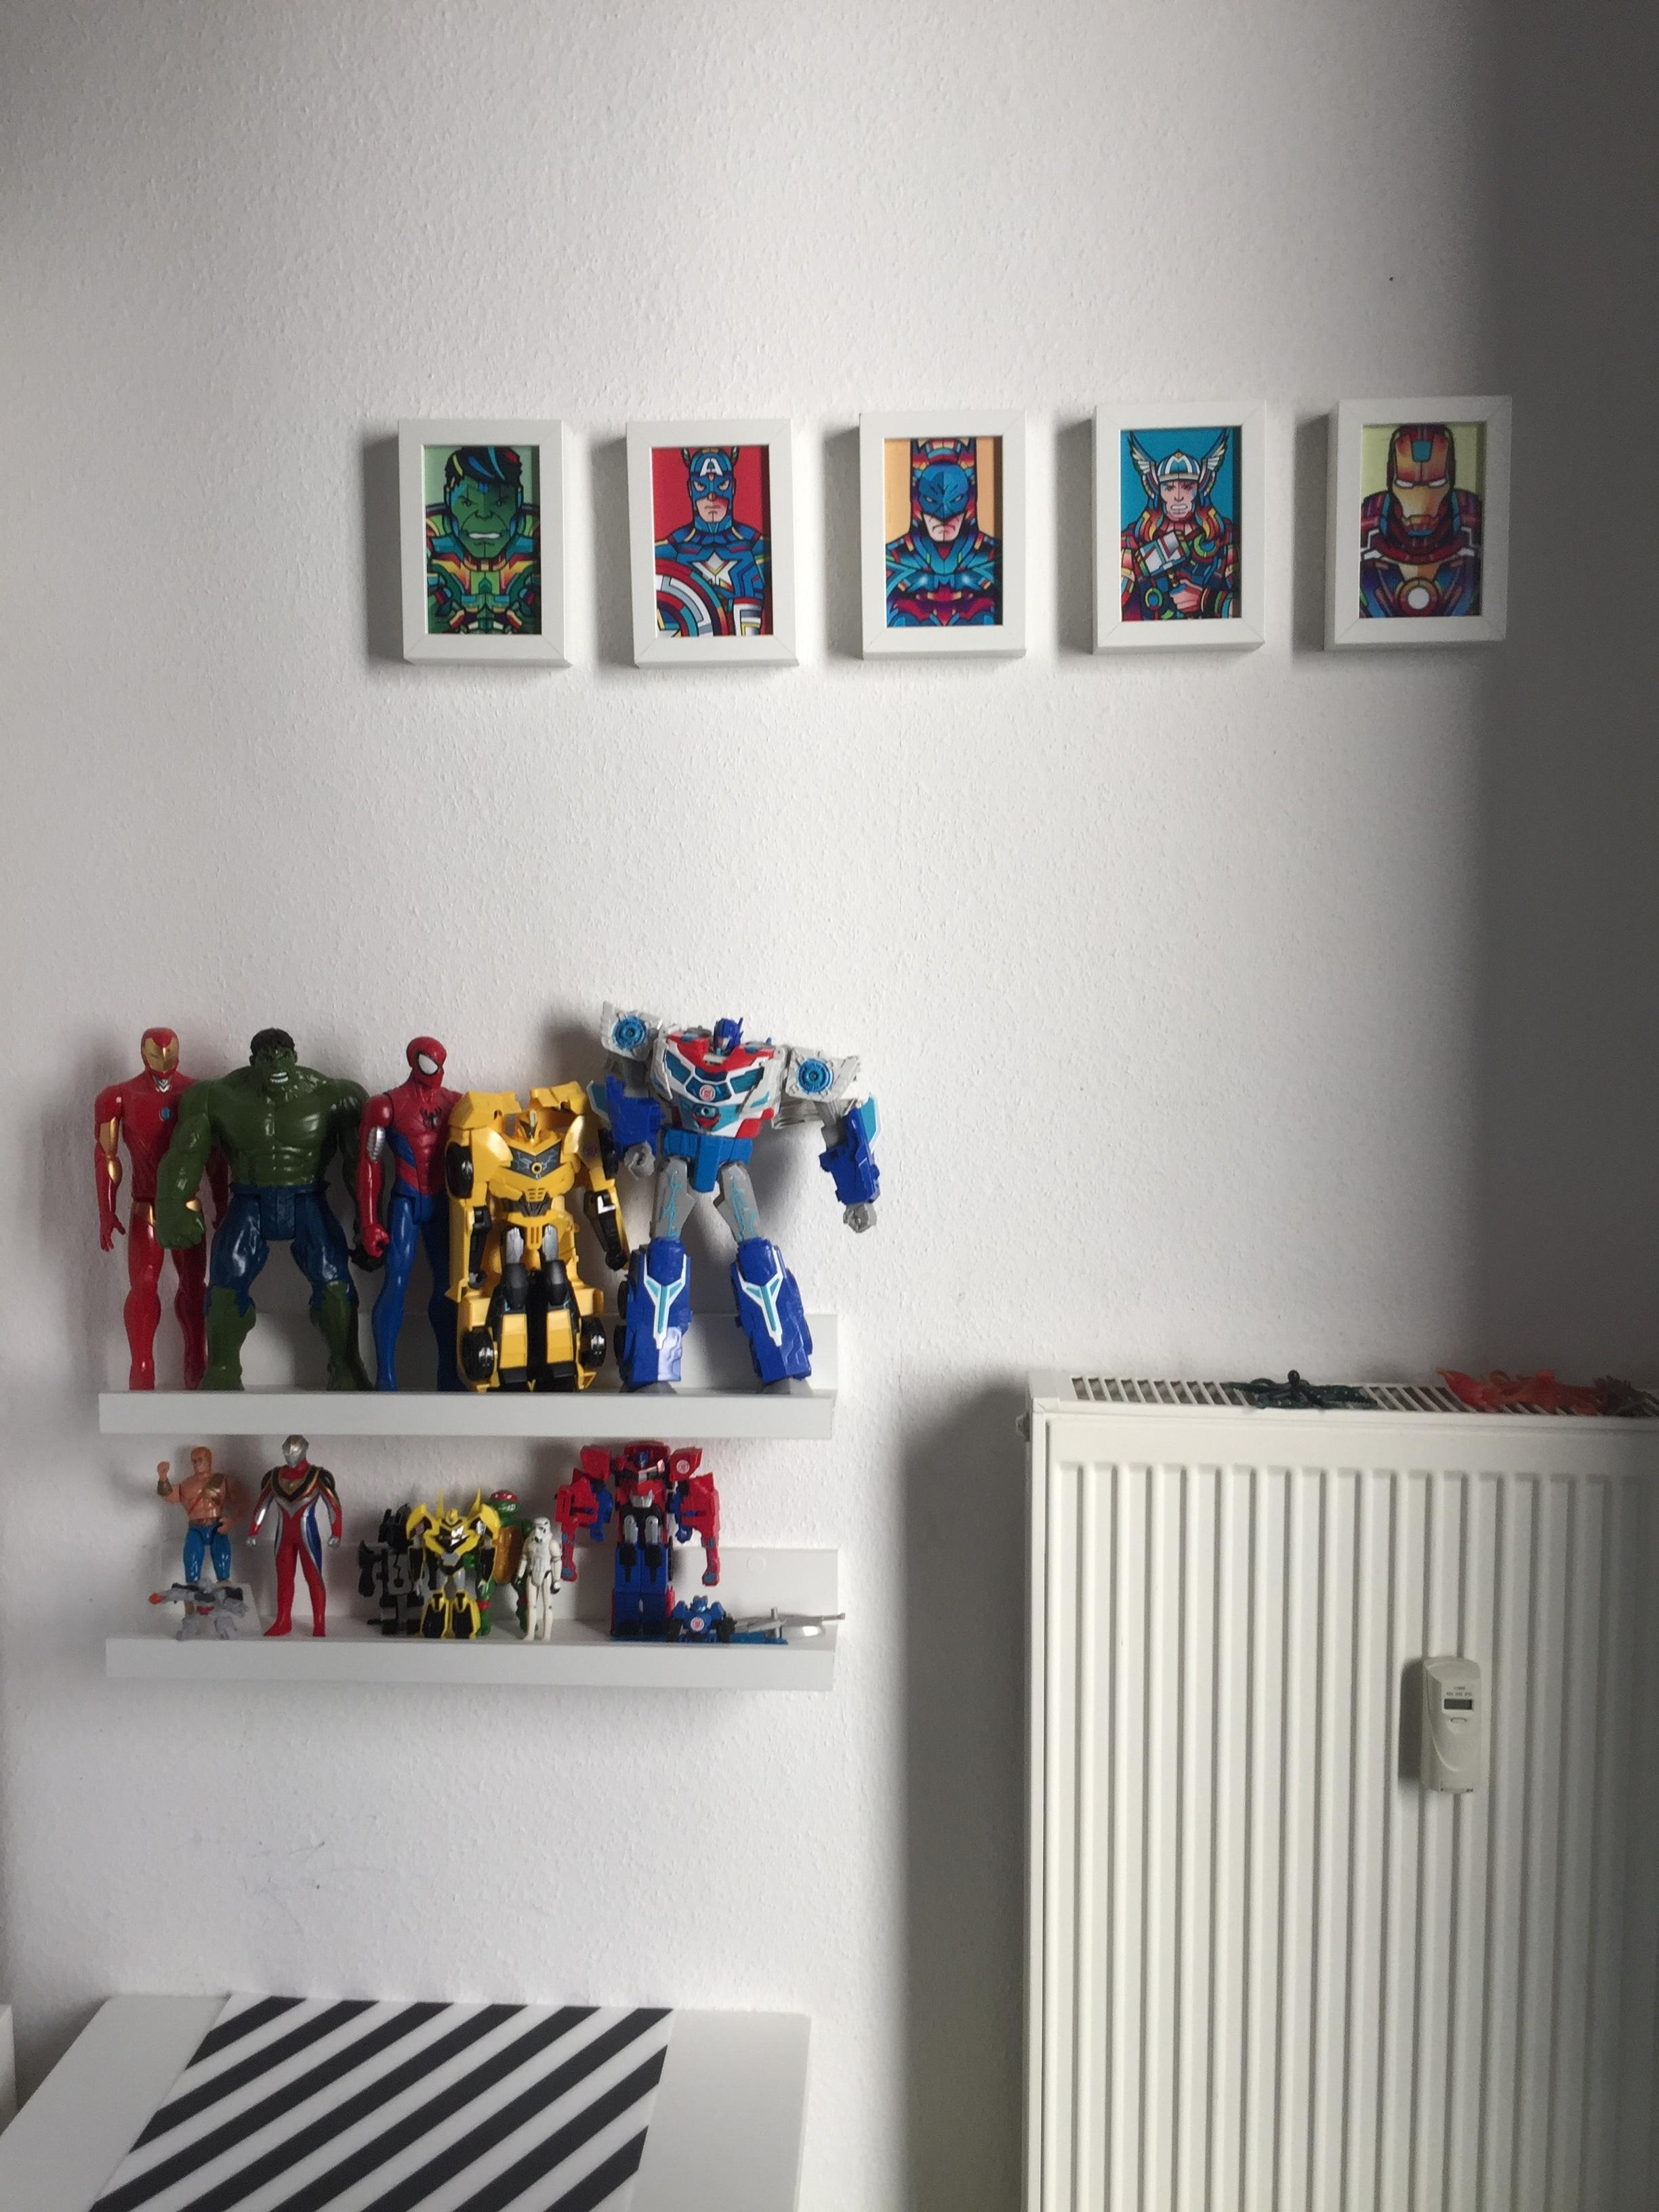 Superhelden #hulk #transformers #ironman #spiderman #display #jungsspielenauchmitpuppen #couchliebt